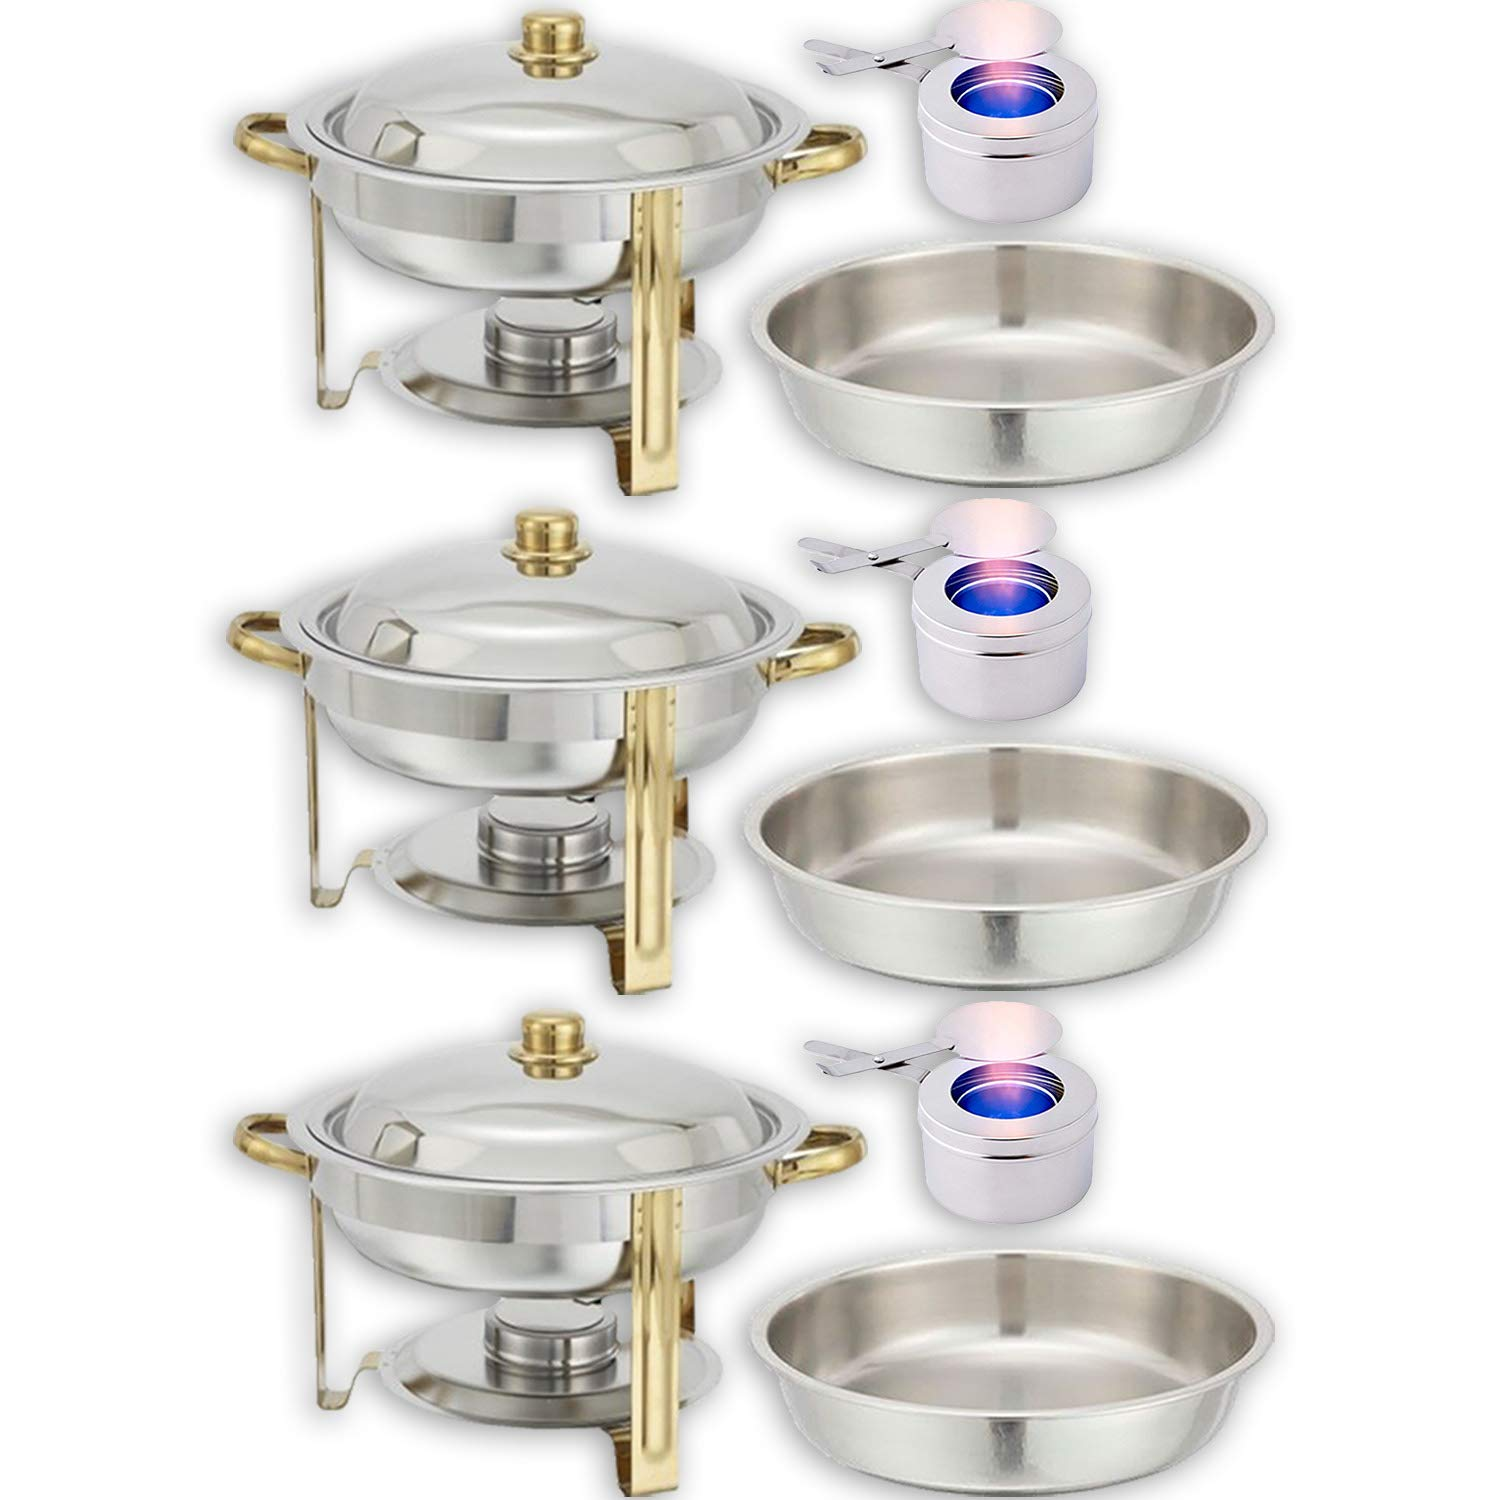 Chafing Dish Buffet Set - Water Pan + Food Pan (4 qt) + Frame + 3 Fuel Holders - Stainless-Steel Warmer Kit 3 Pack